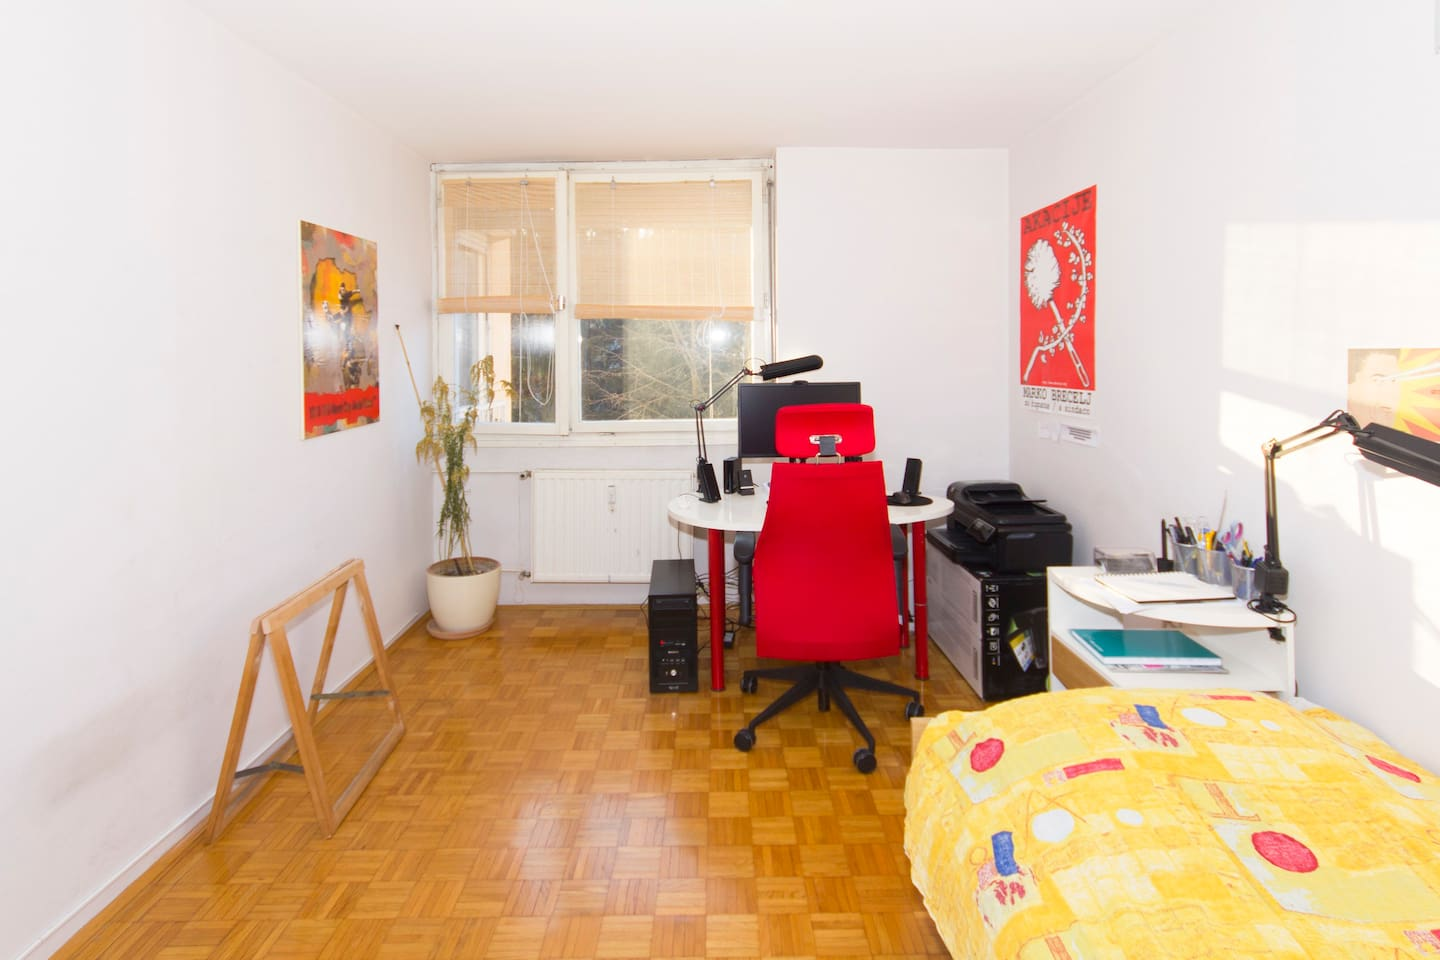 Everything you need for your stay in Ljubljana in a very bright room.